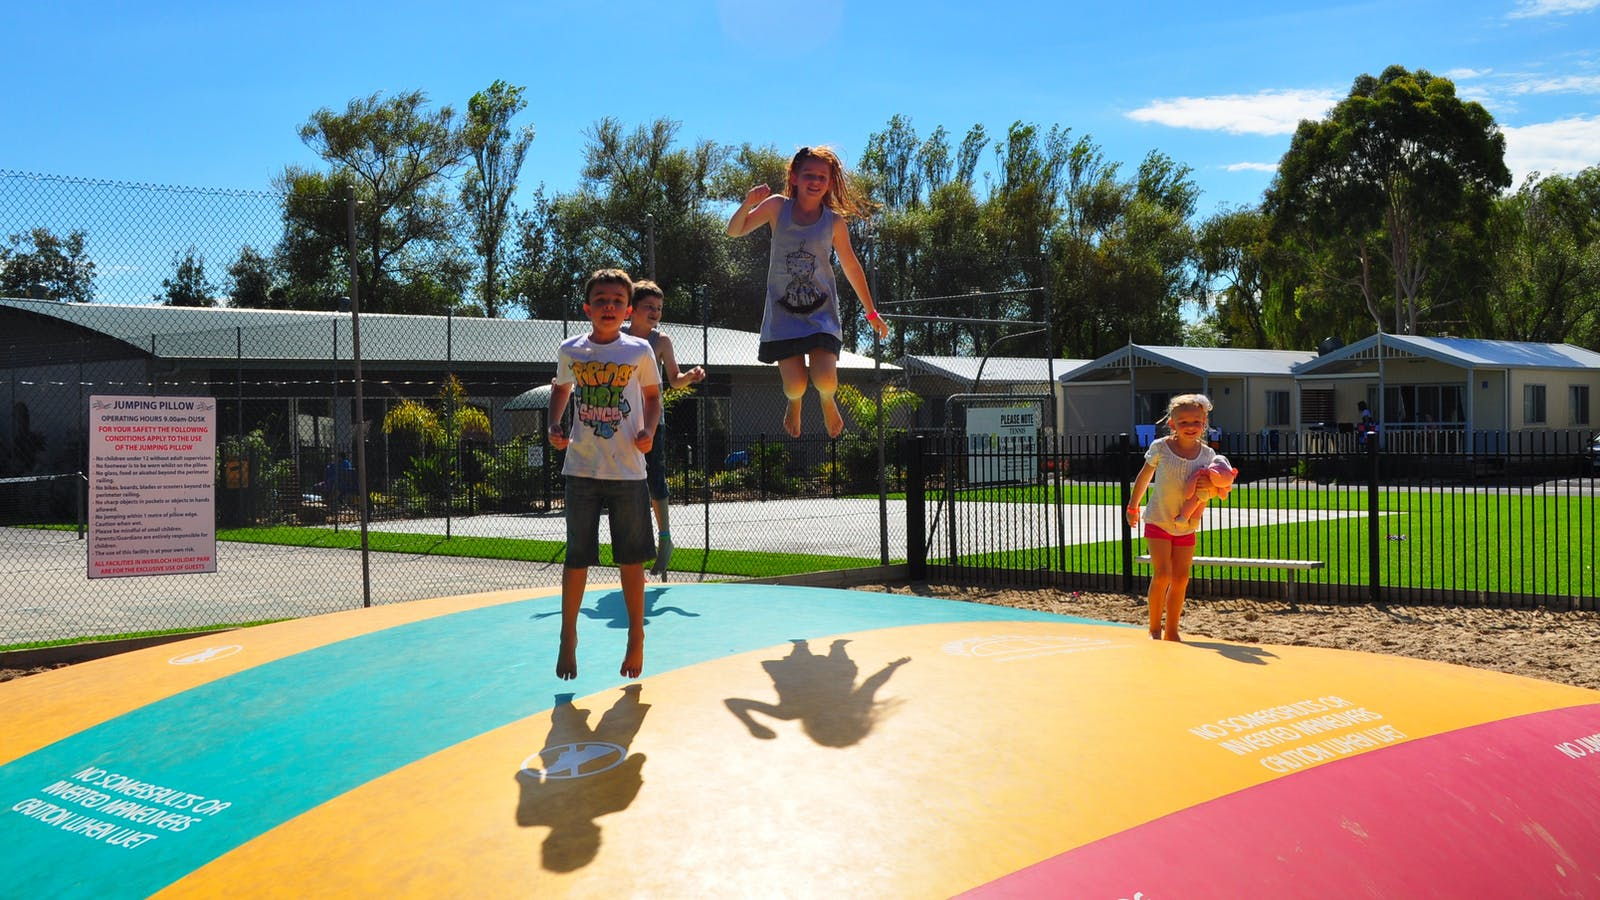 Great fun on the jumping pillow